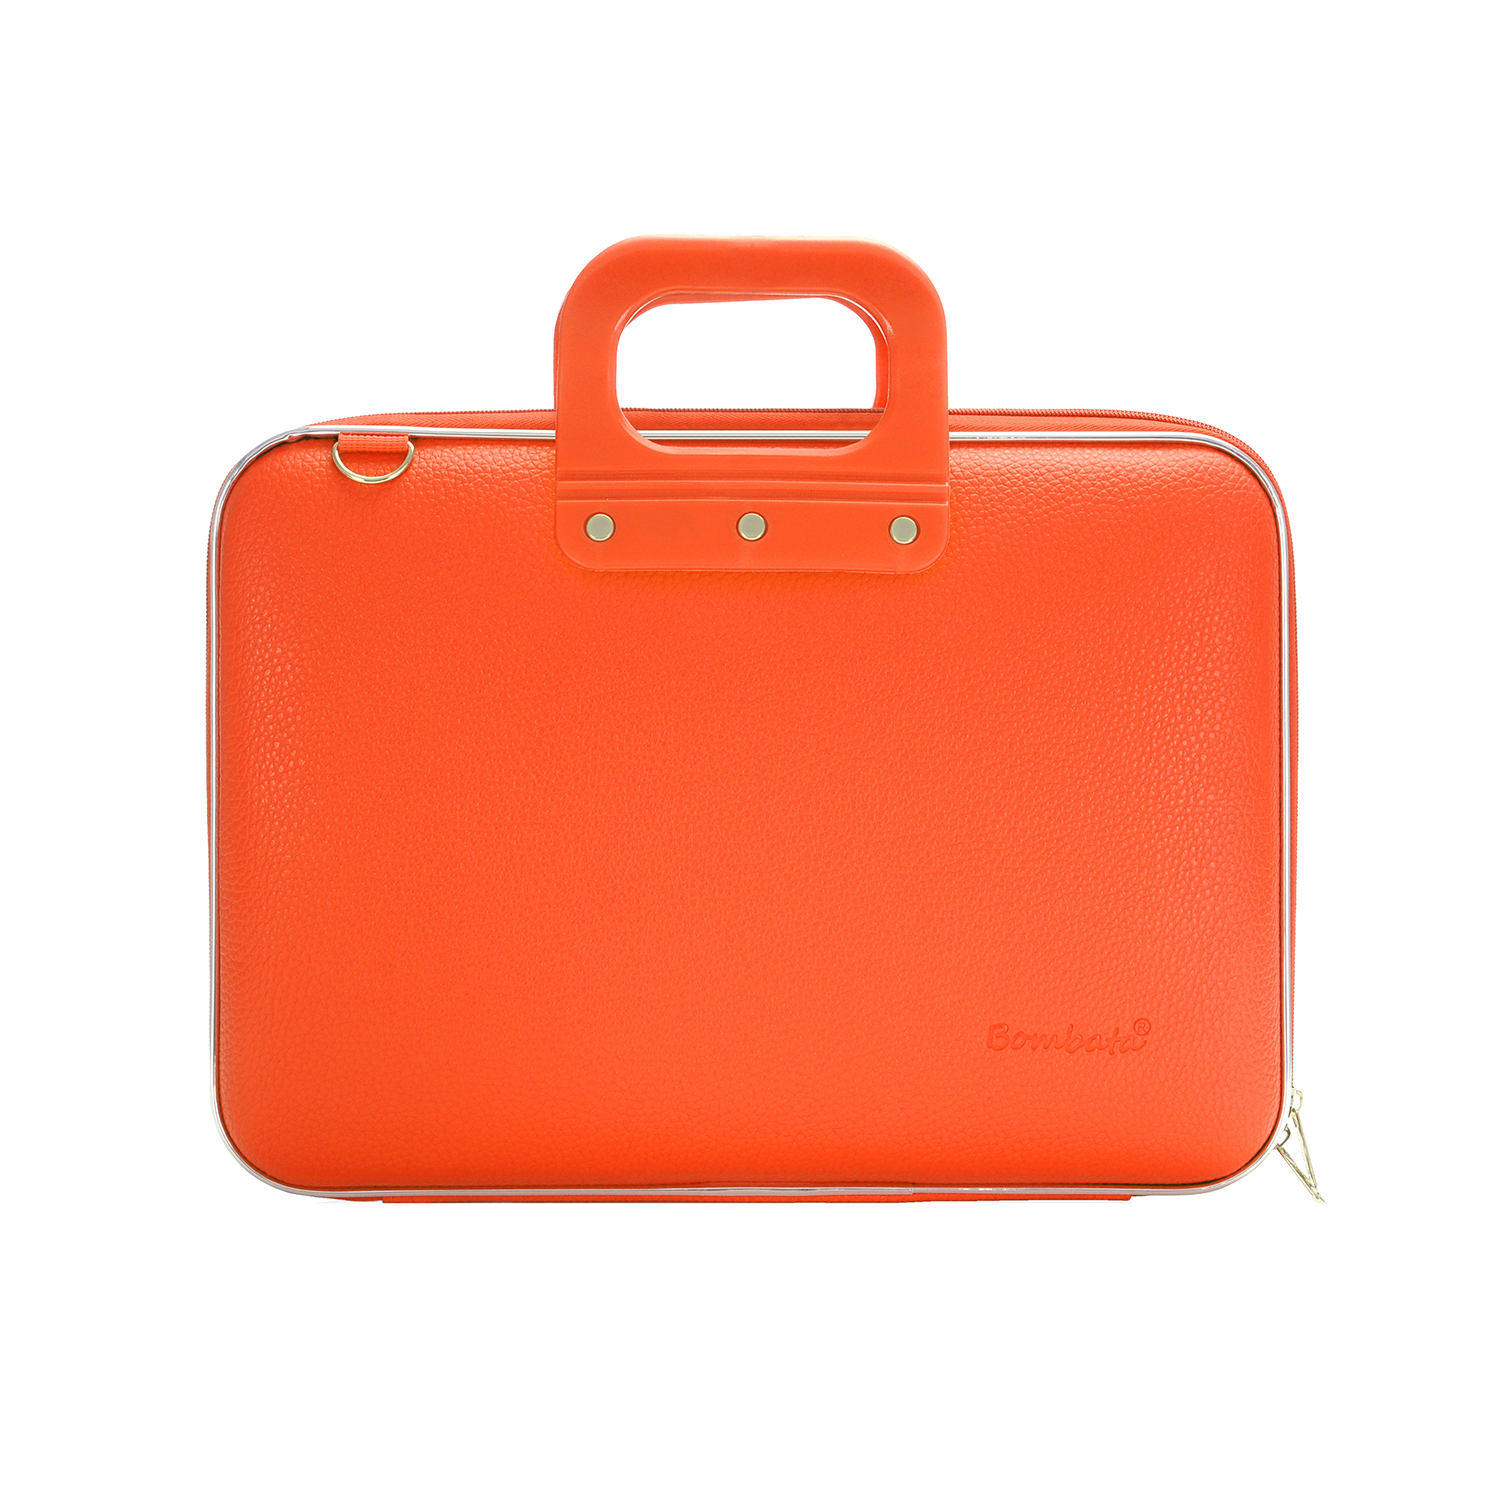 Bombata – Orange Medio Classic 13″ Laptop Case/Bag with Shoulder Strap